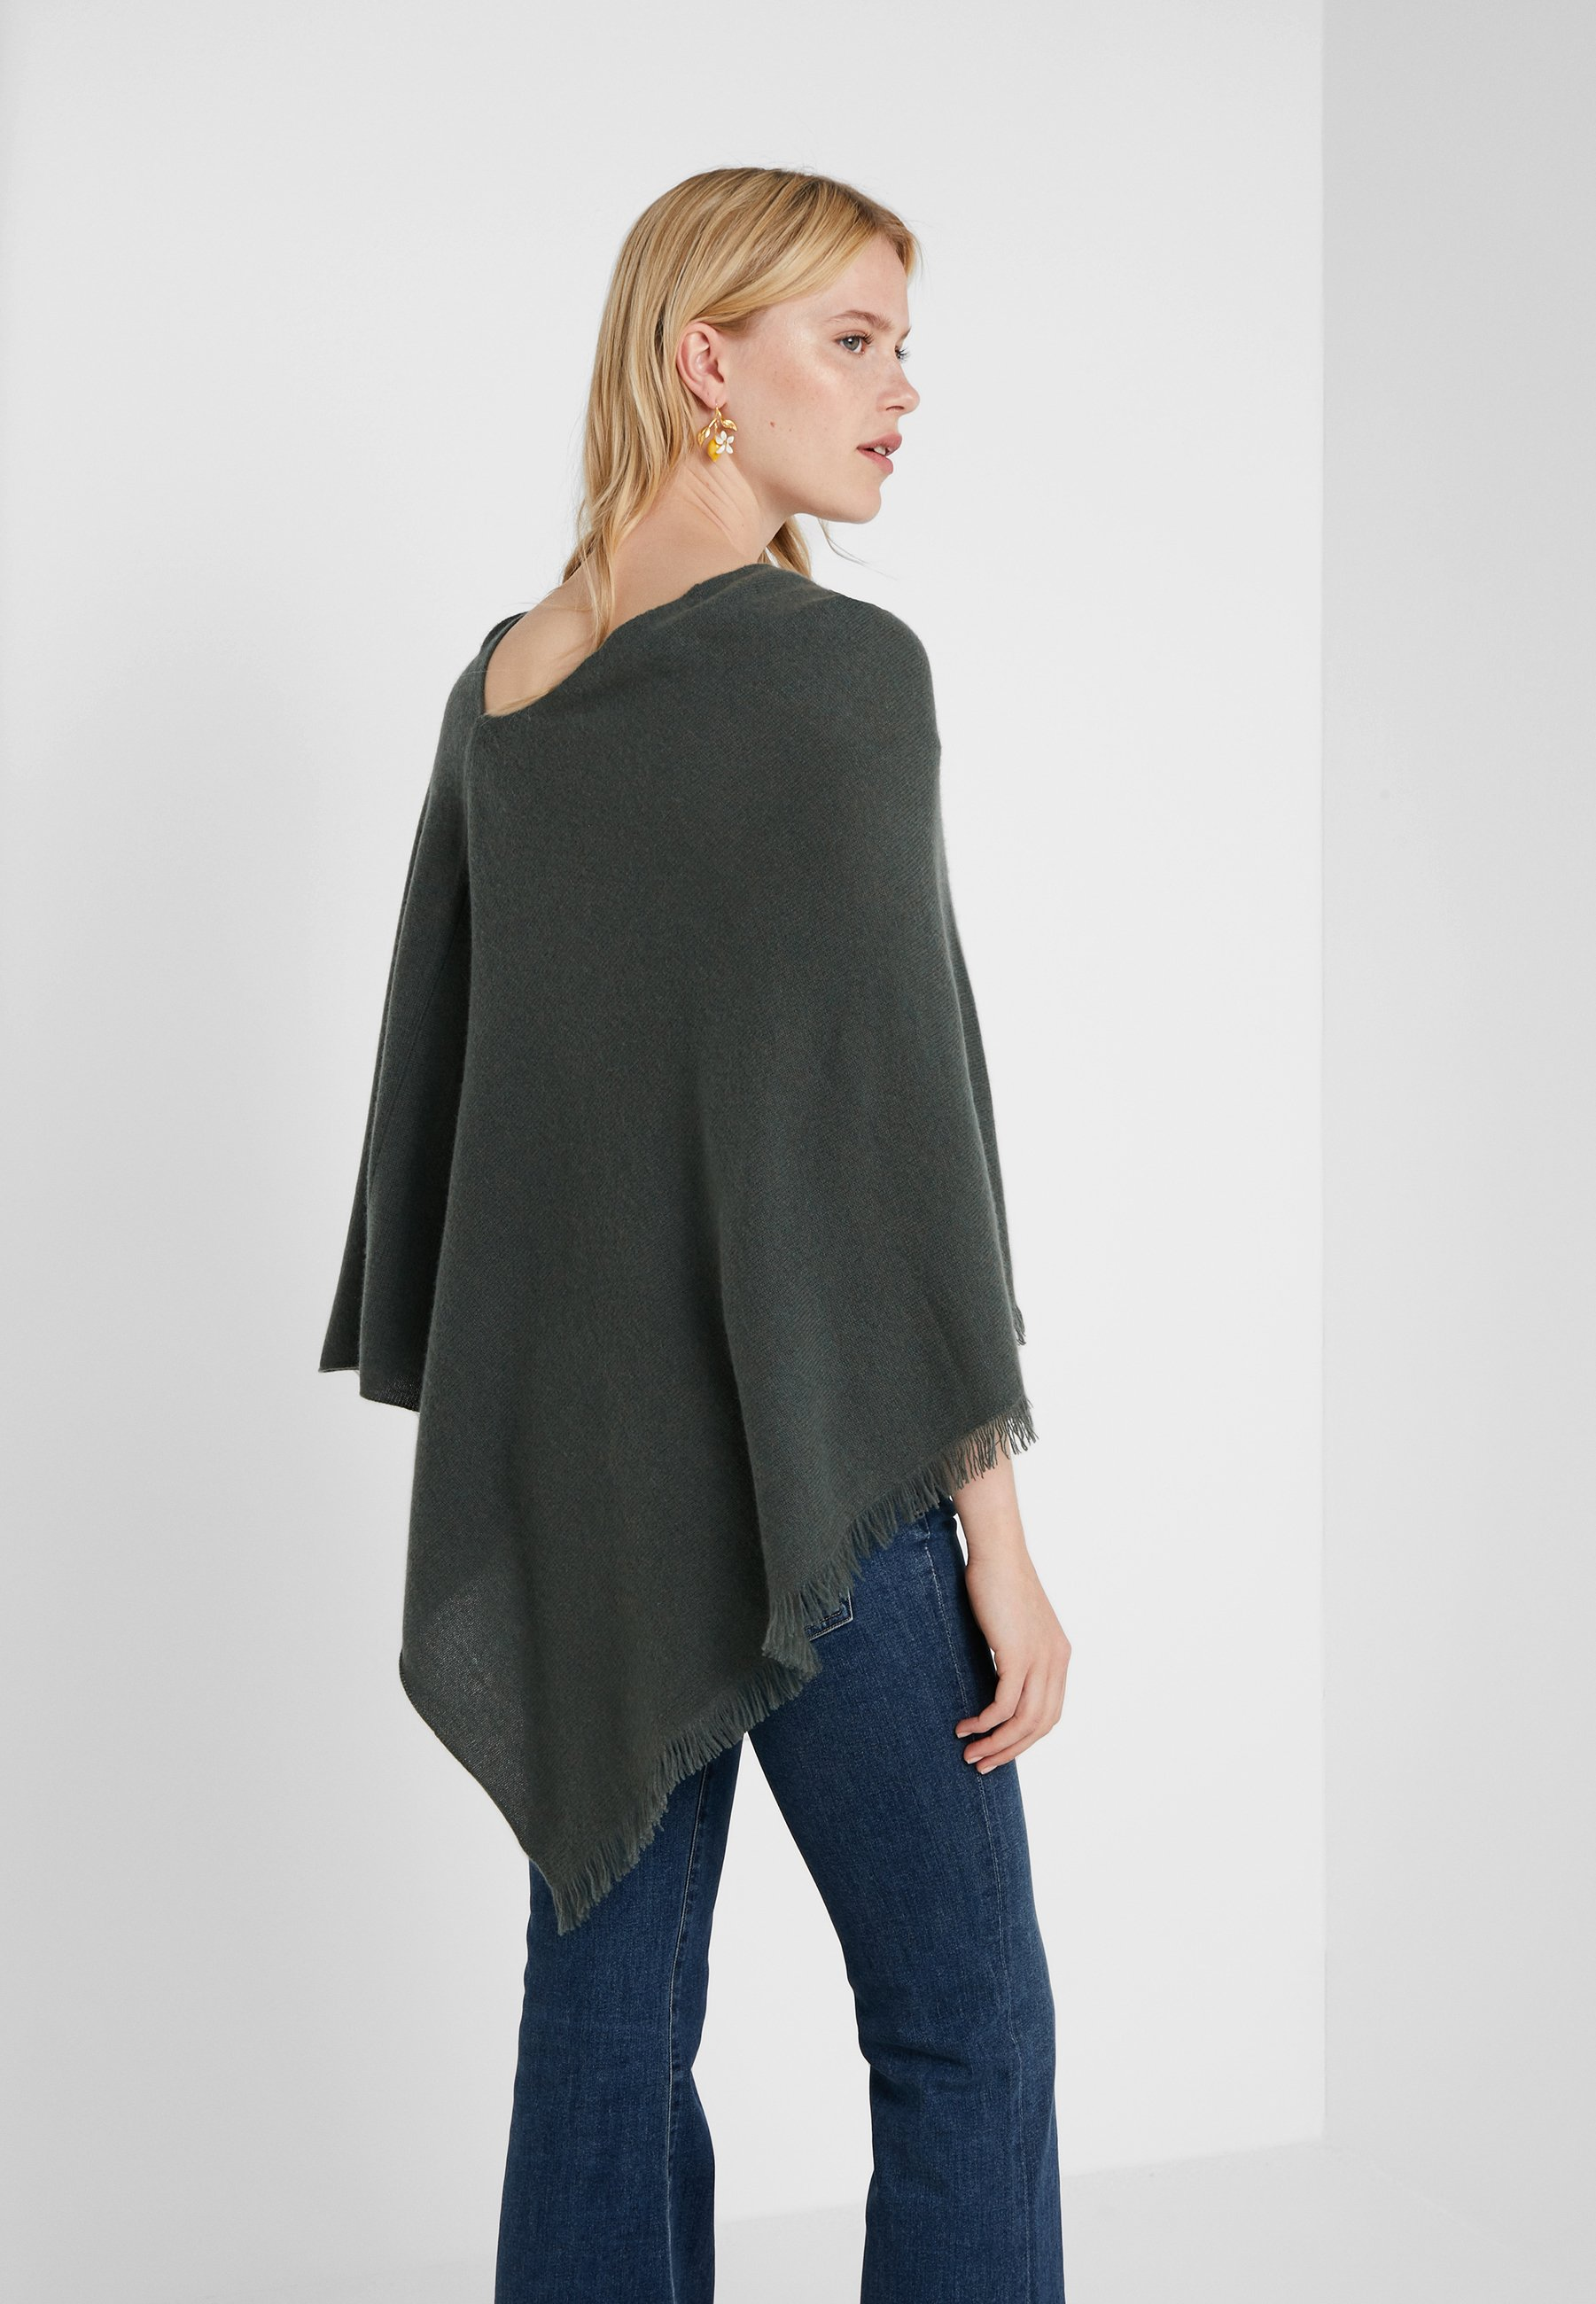 Repeat Plain Poncho - Cape Khaki